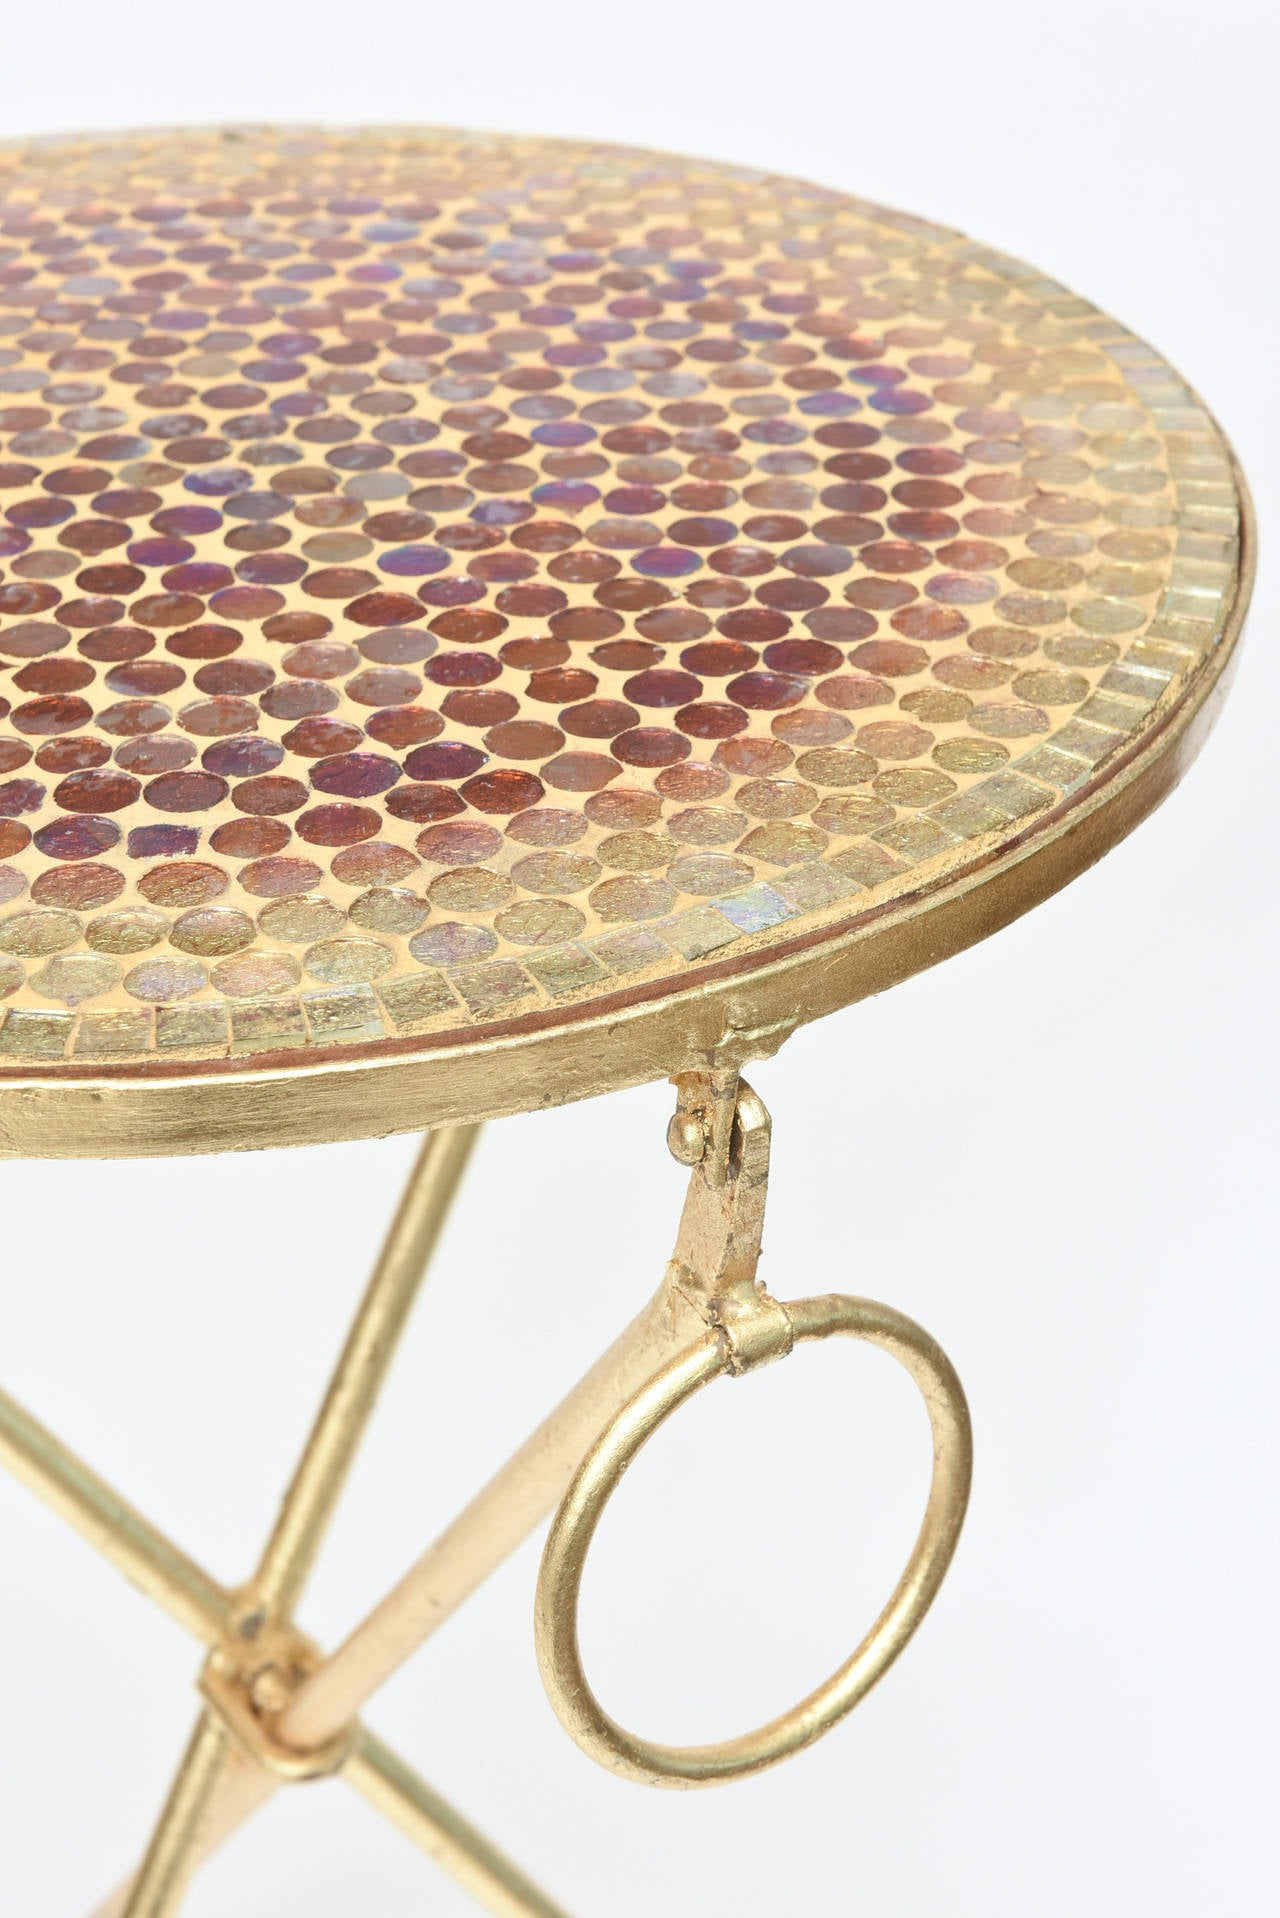 These lovely Italian tripod side tables are from the 1960s. They are real gold leaf over iron and have beautiful original glass mosaic tops that almost have an iridescence to them. Each table has one gold ring on one side. The ball feet have